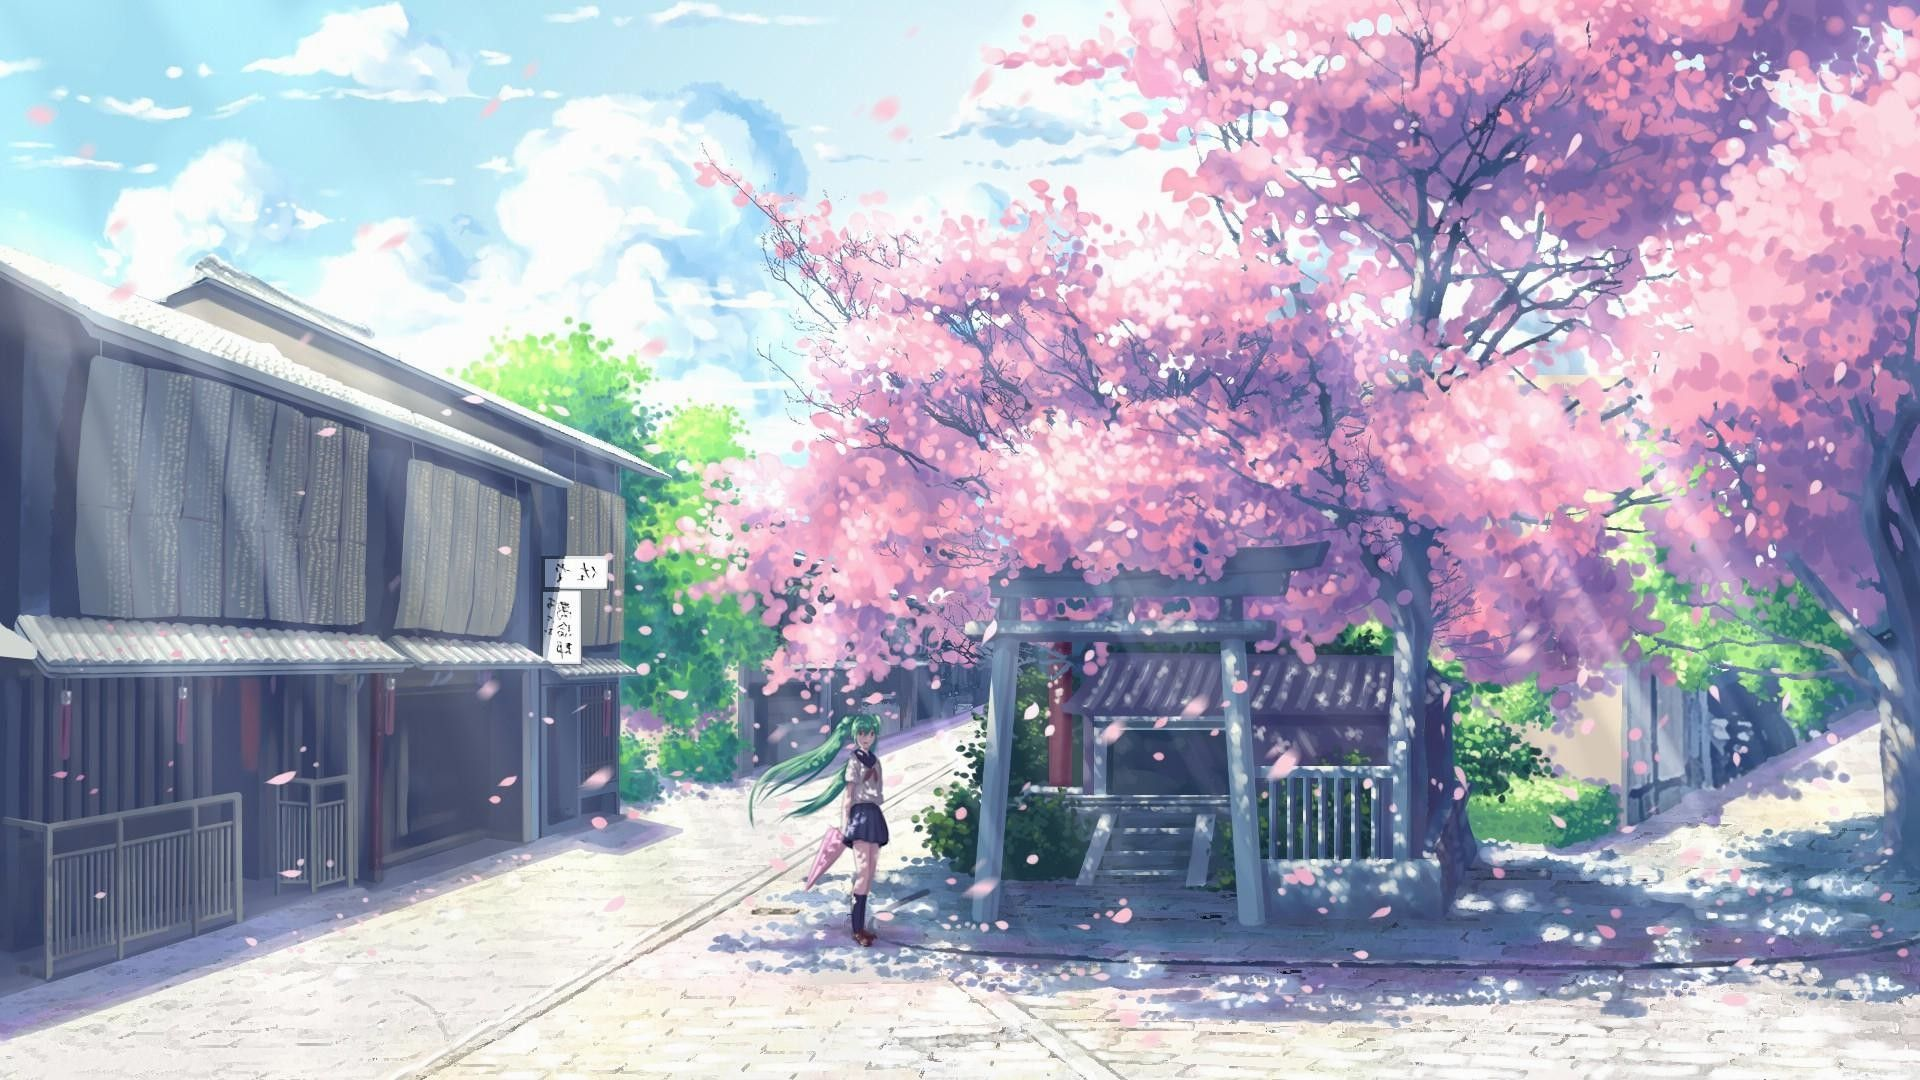 Anime Cherry Blossom Wallpapers Top Free Anime Cherry